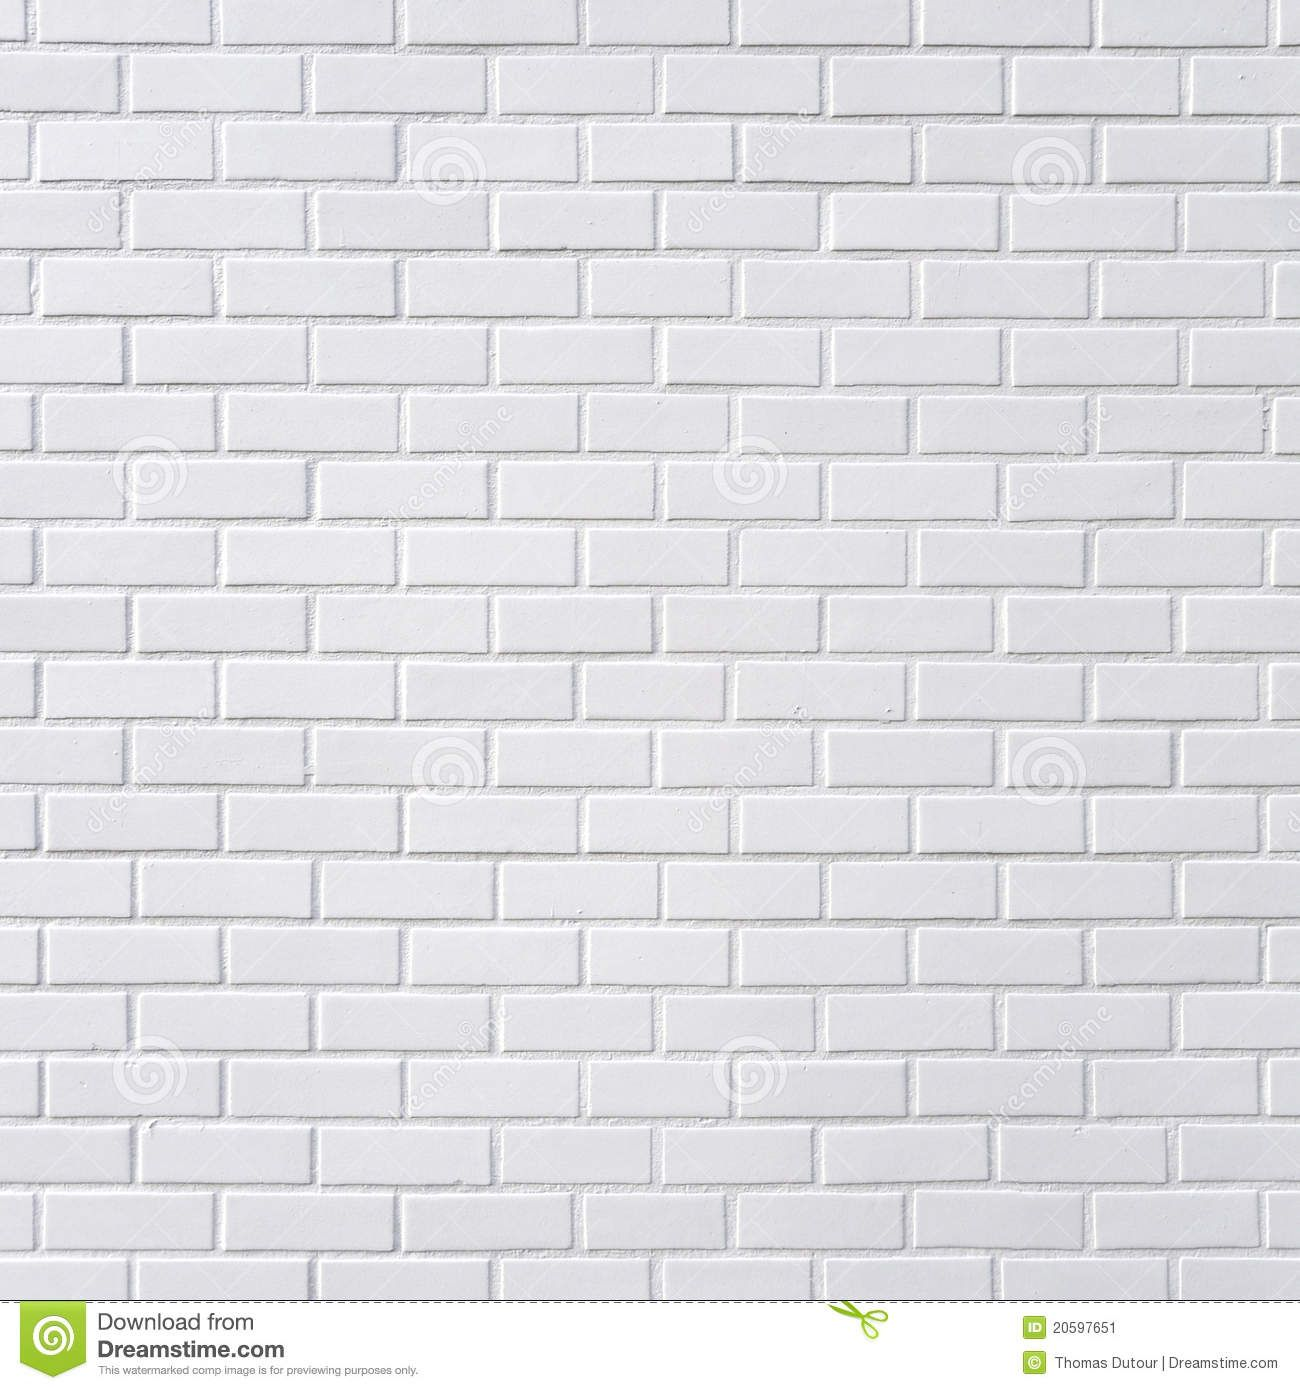 Pin By Maryann On Exteriors Brick Wall Backdrop White Brick Walls White Brick Wallpaper